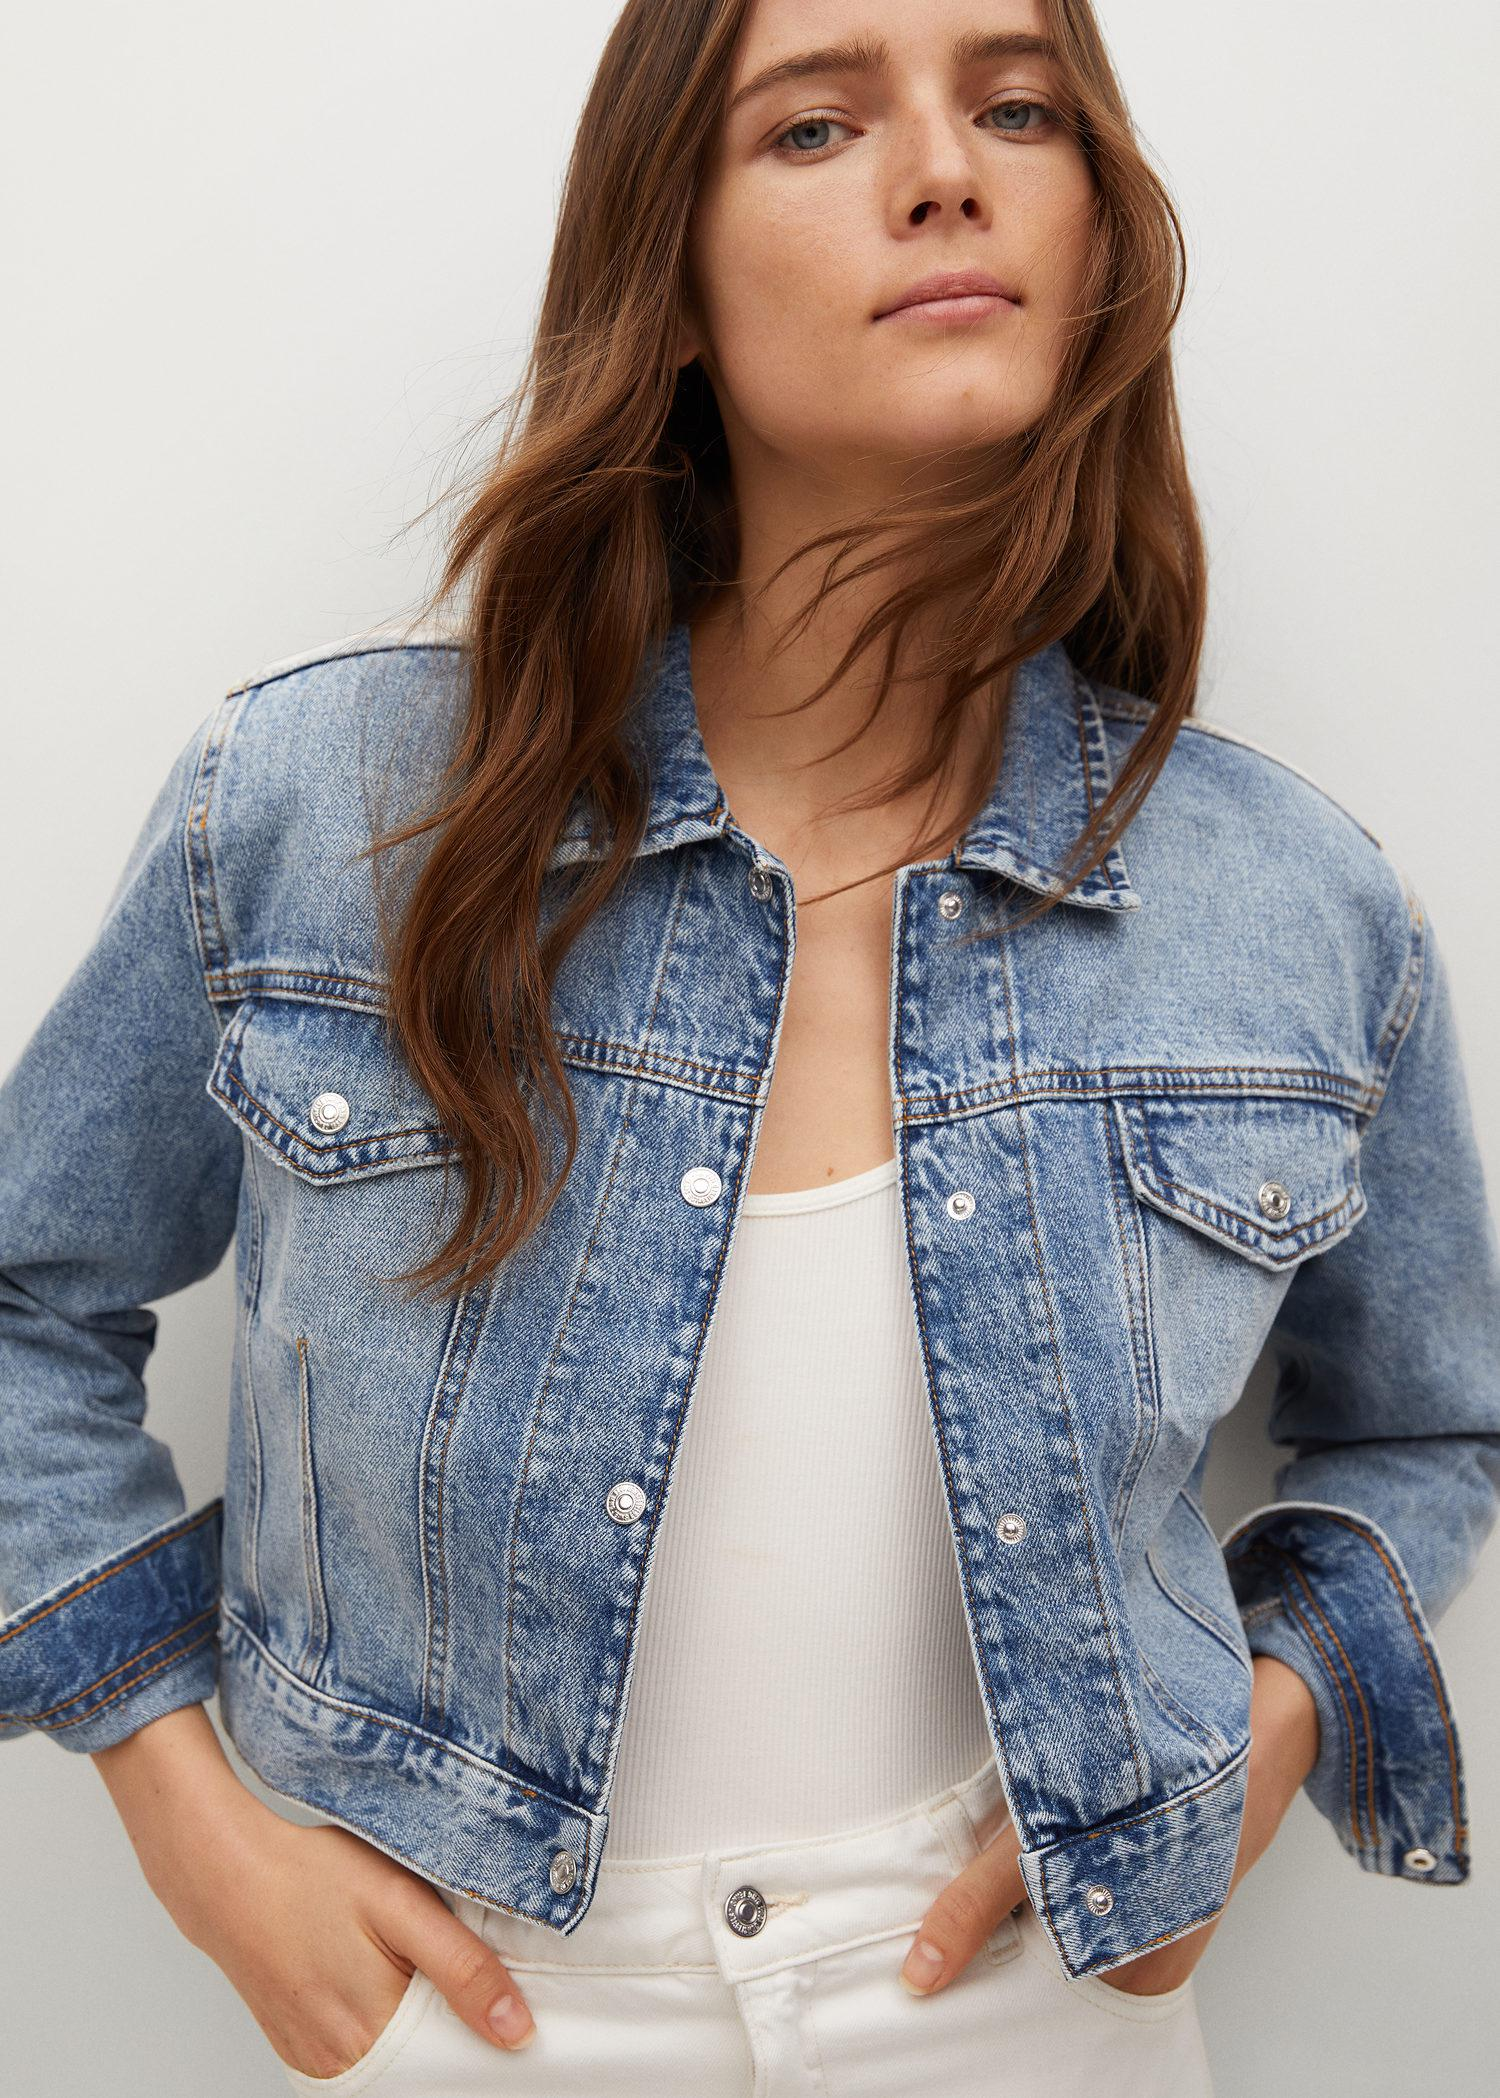 Cropped jacket with shoulder pads 4